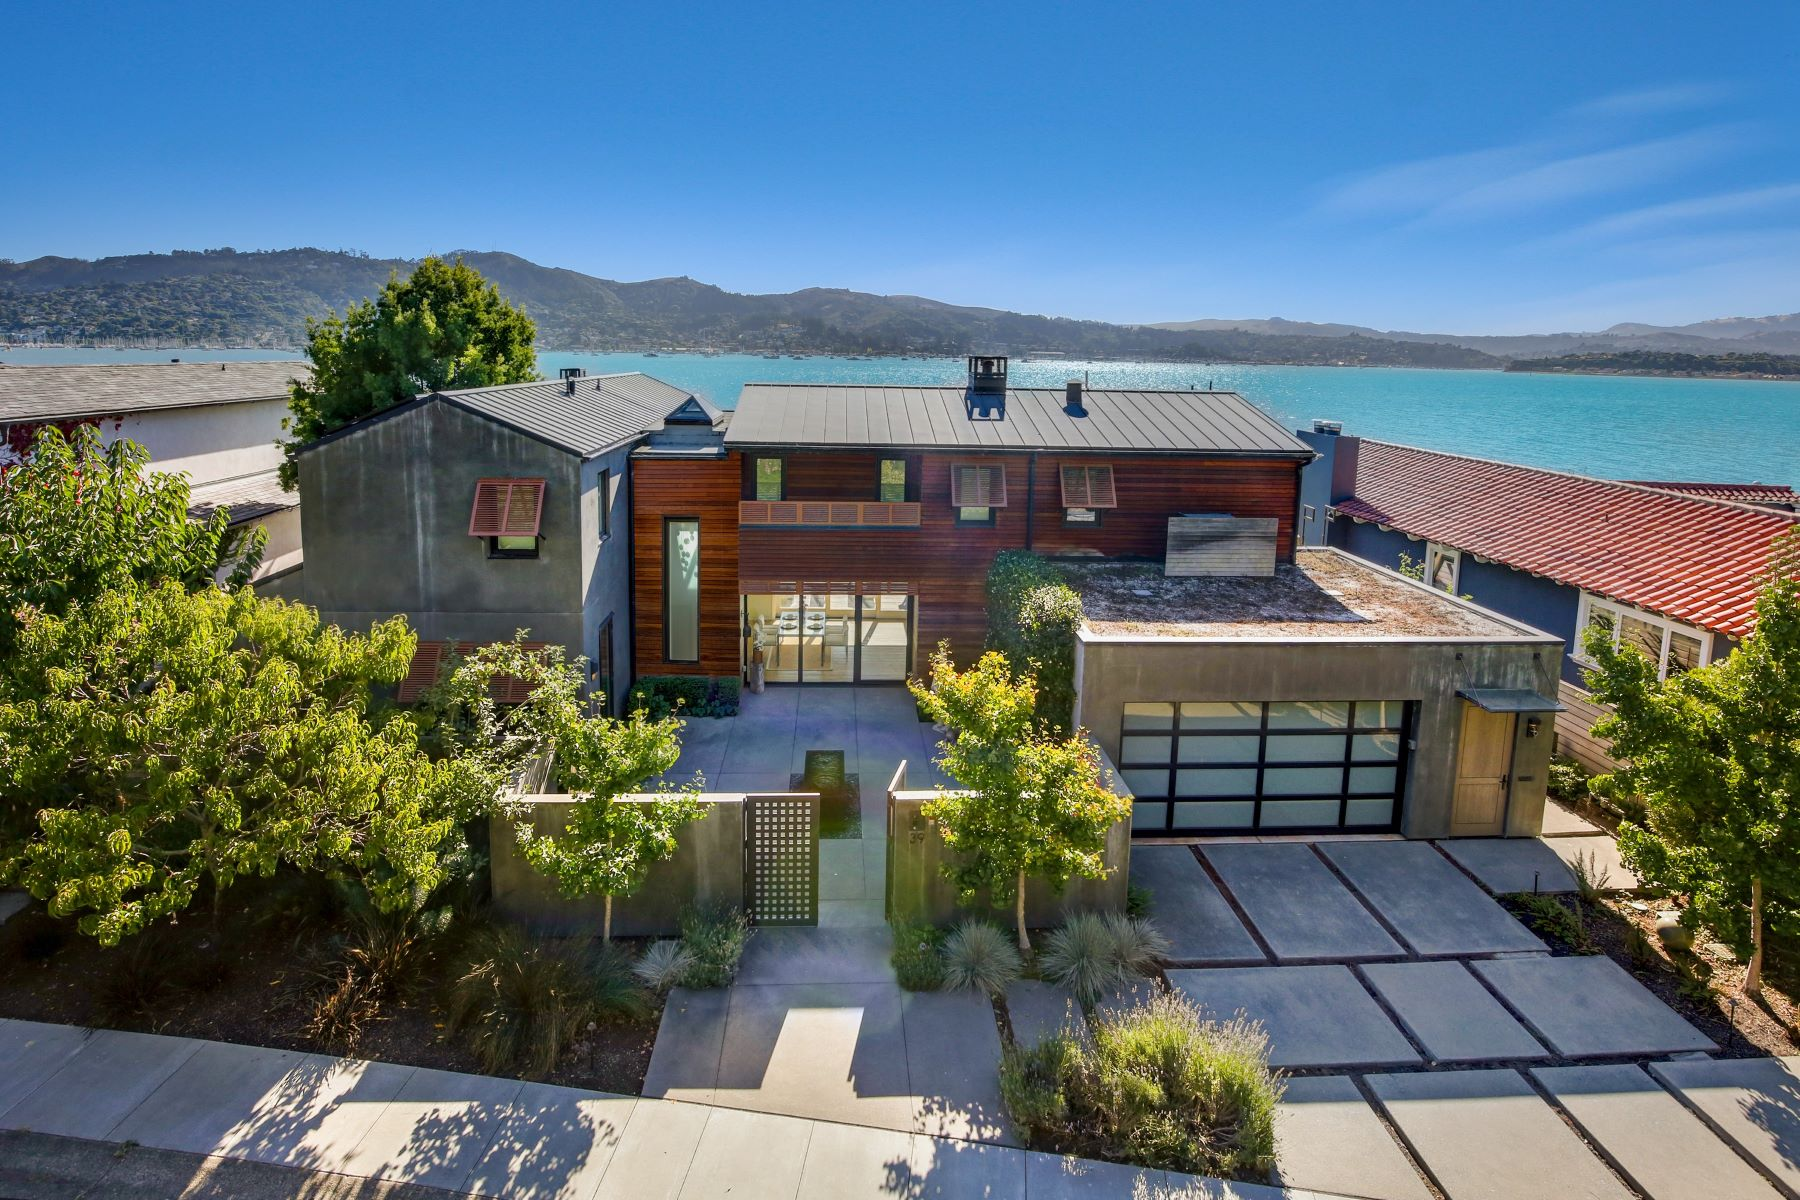 Single Family Homes for Sale at State-of-art extreme high-quality home! 39 West Shore Road Belvedere, California 94920 United States